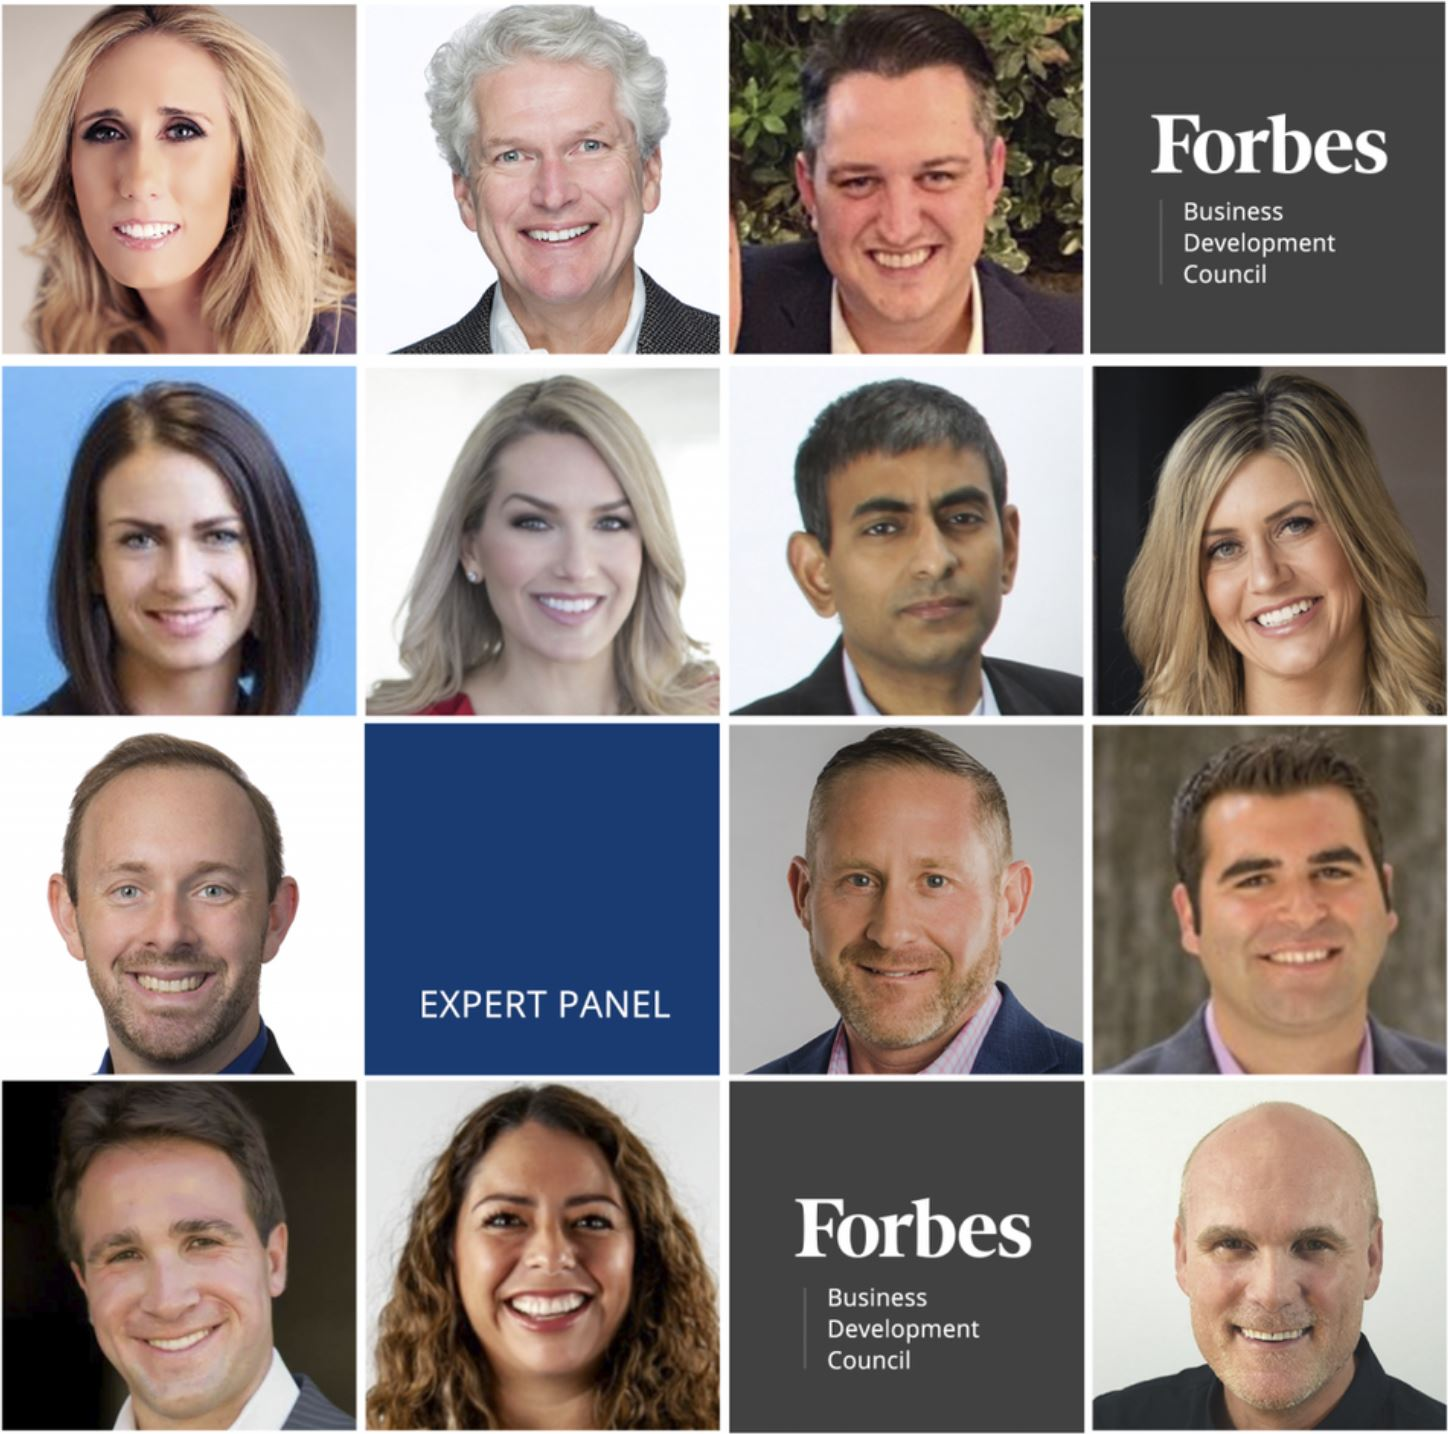 forbes pic